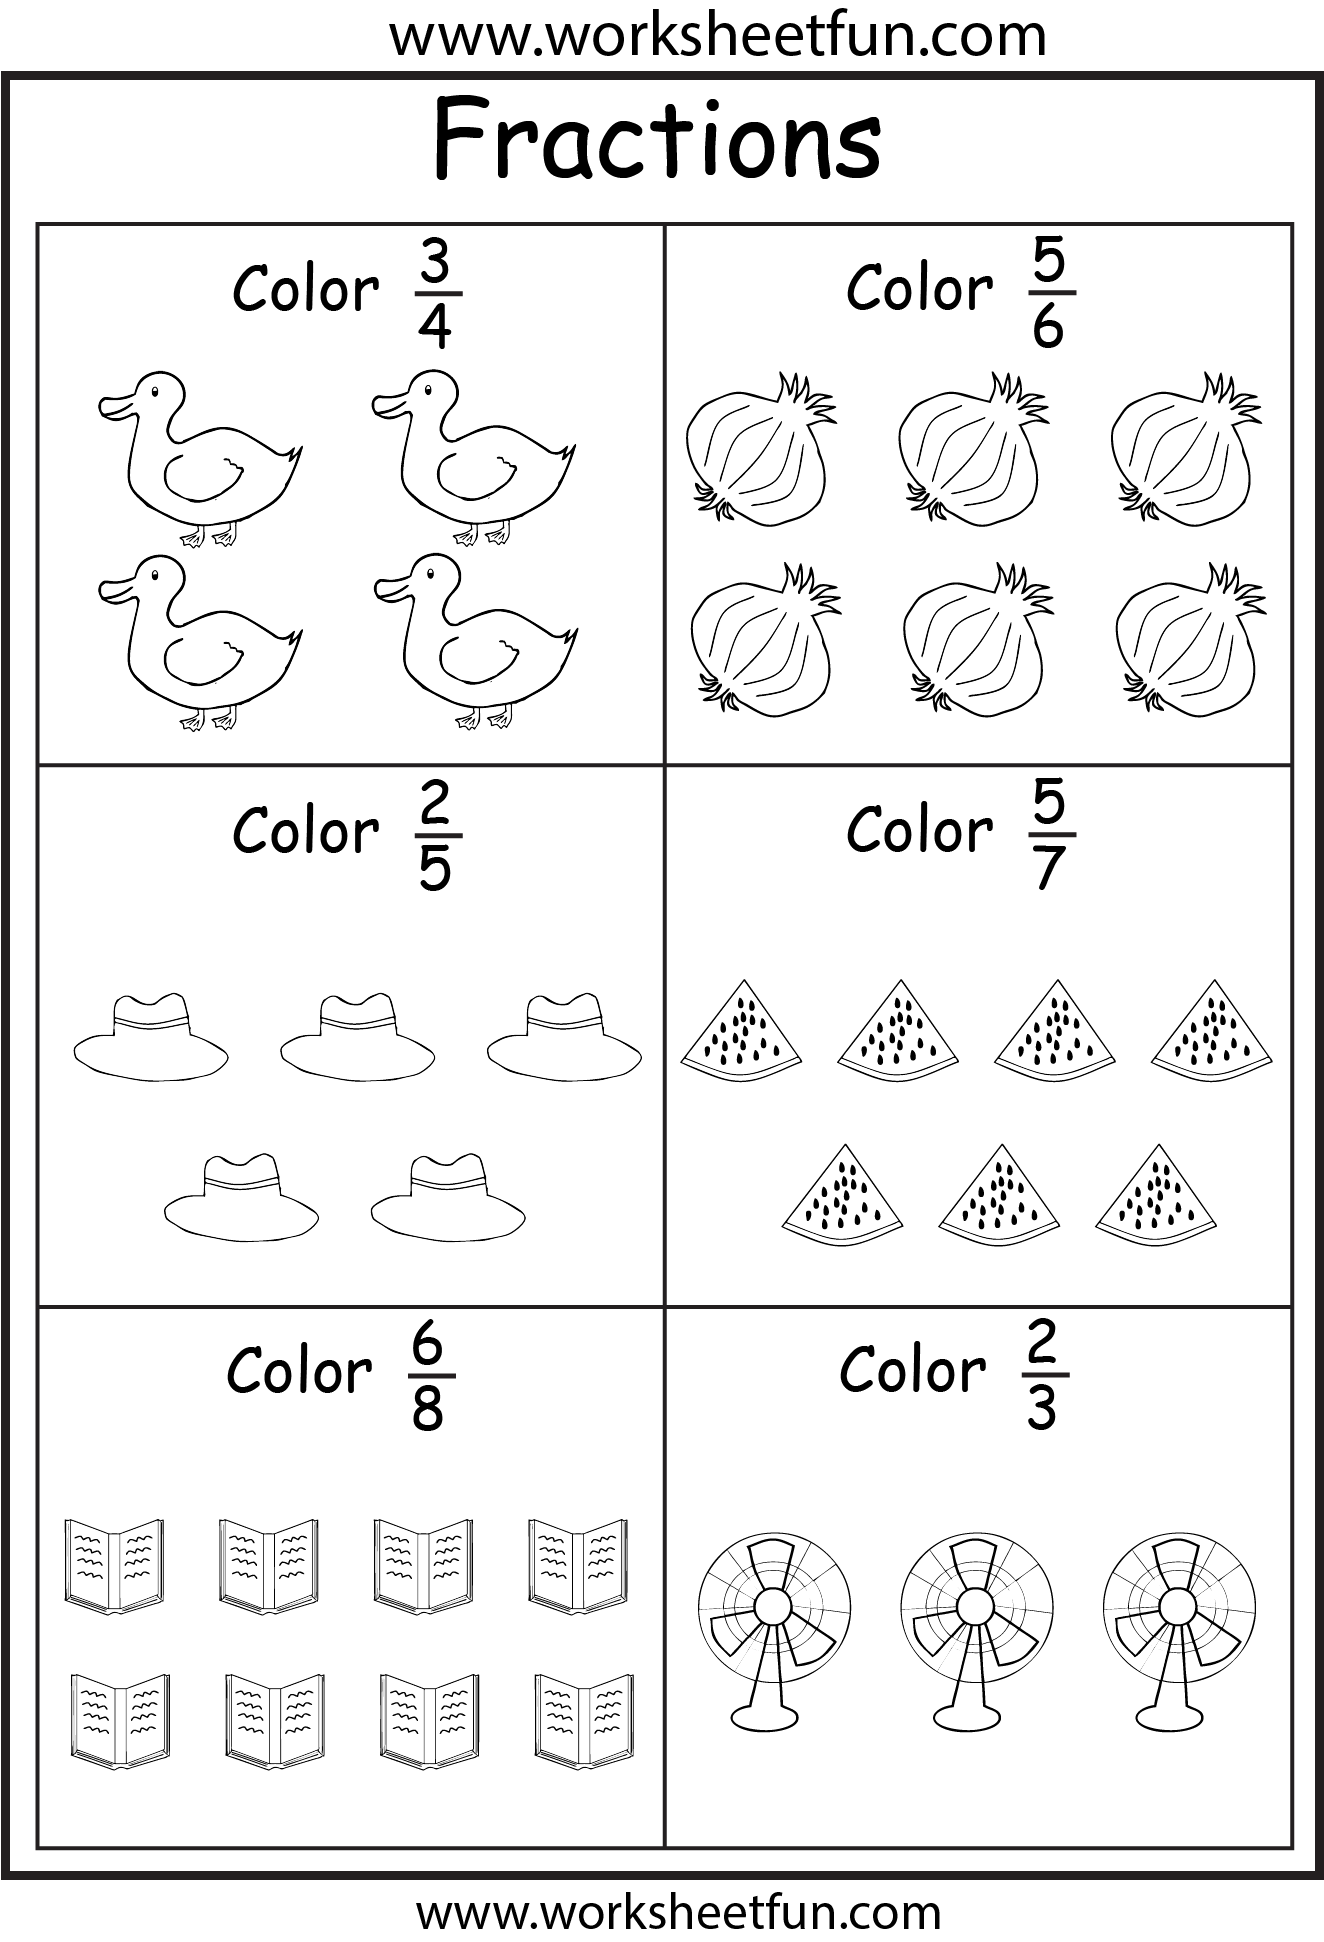 Worksheets Illustration Of Fraction Grade 2 fractions w objects school pinterest math and worksheets objects